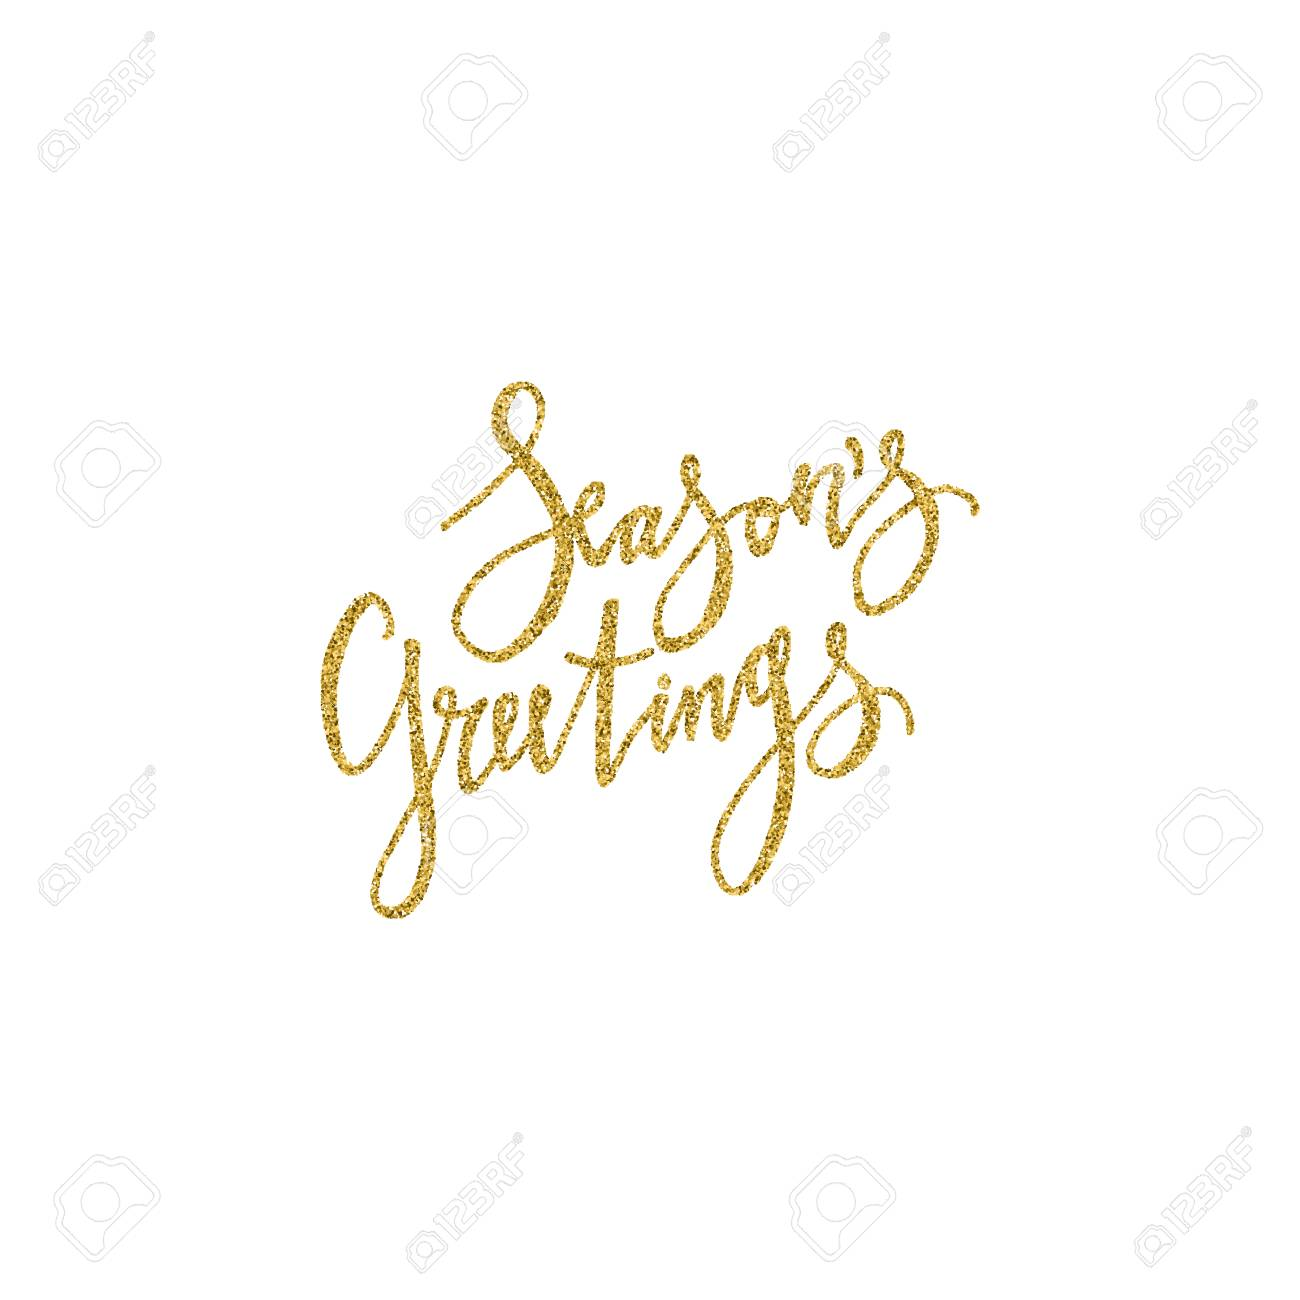 Seasons Greetings Lettering With Golden Glitter Texture Modern